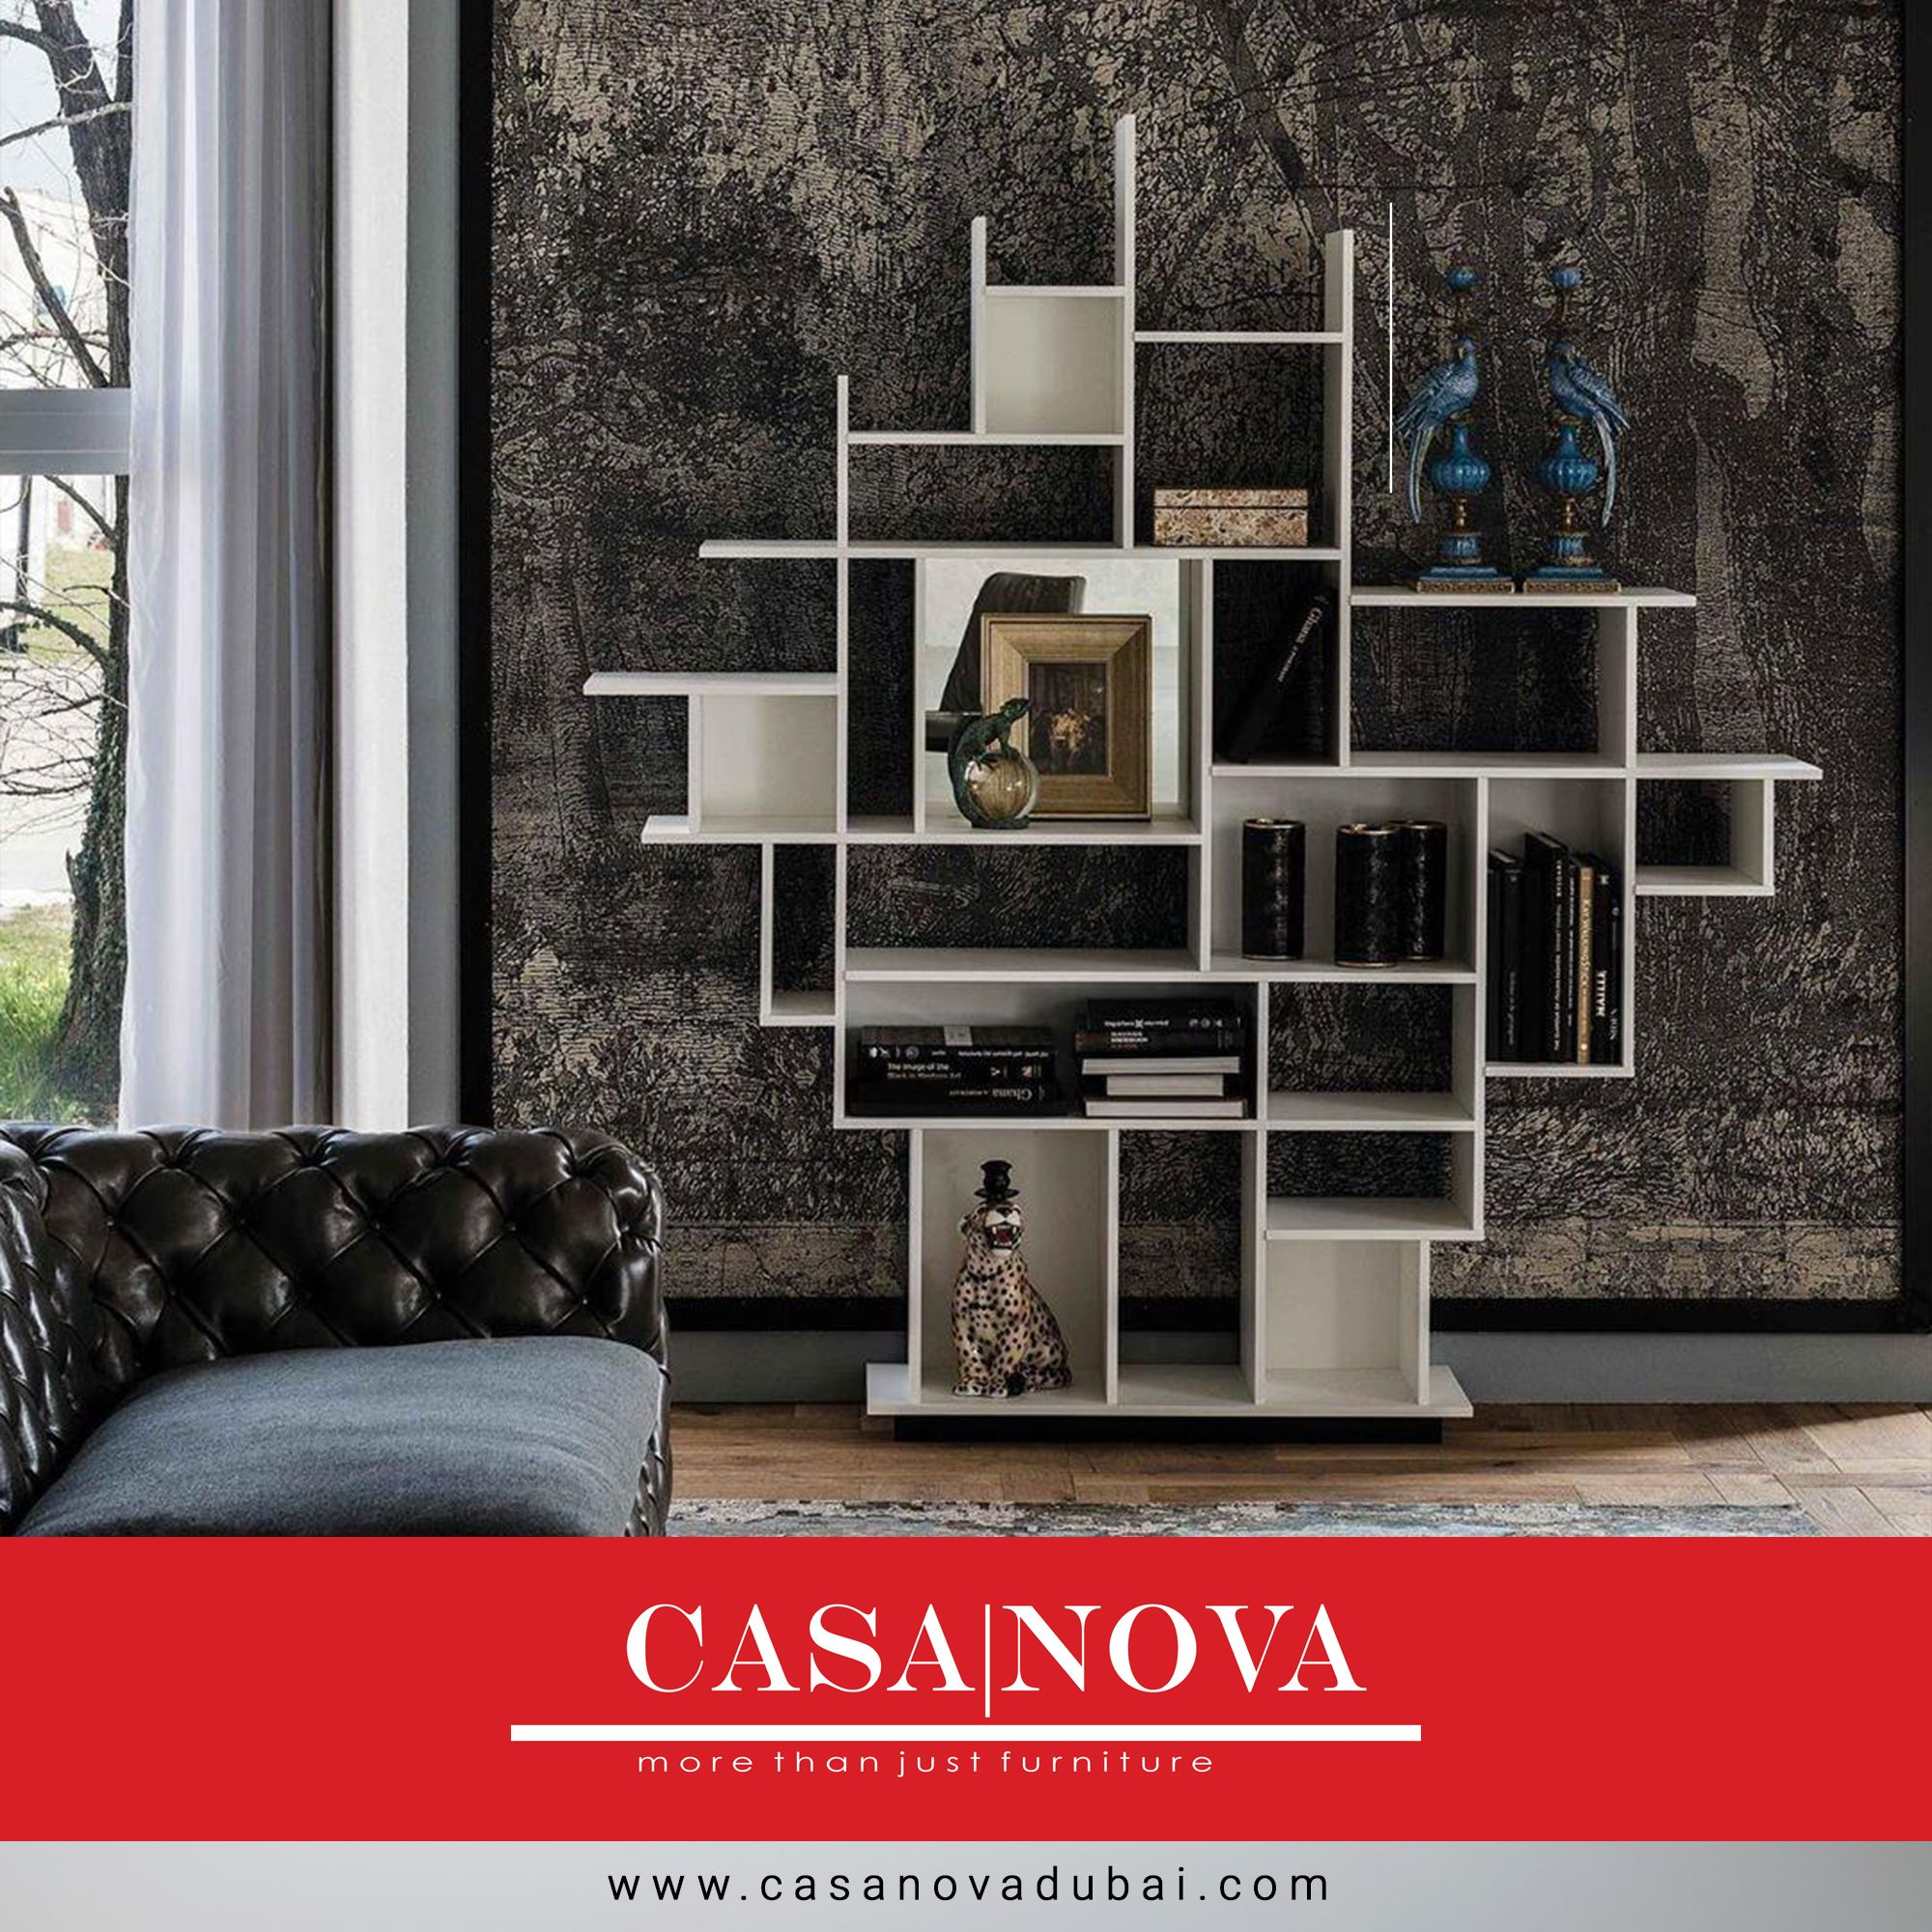 Dubaishopping Exclusive Casanova Italian Furniture Sheikhzayedroad Mydubai Alaincity Luxury Furniture Stores Italian Furniture Stores Luxury Furniture